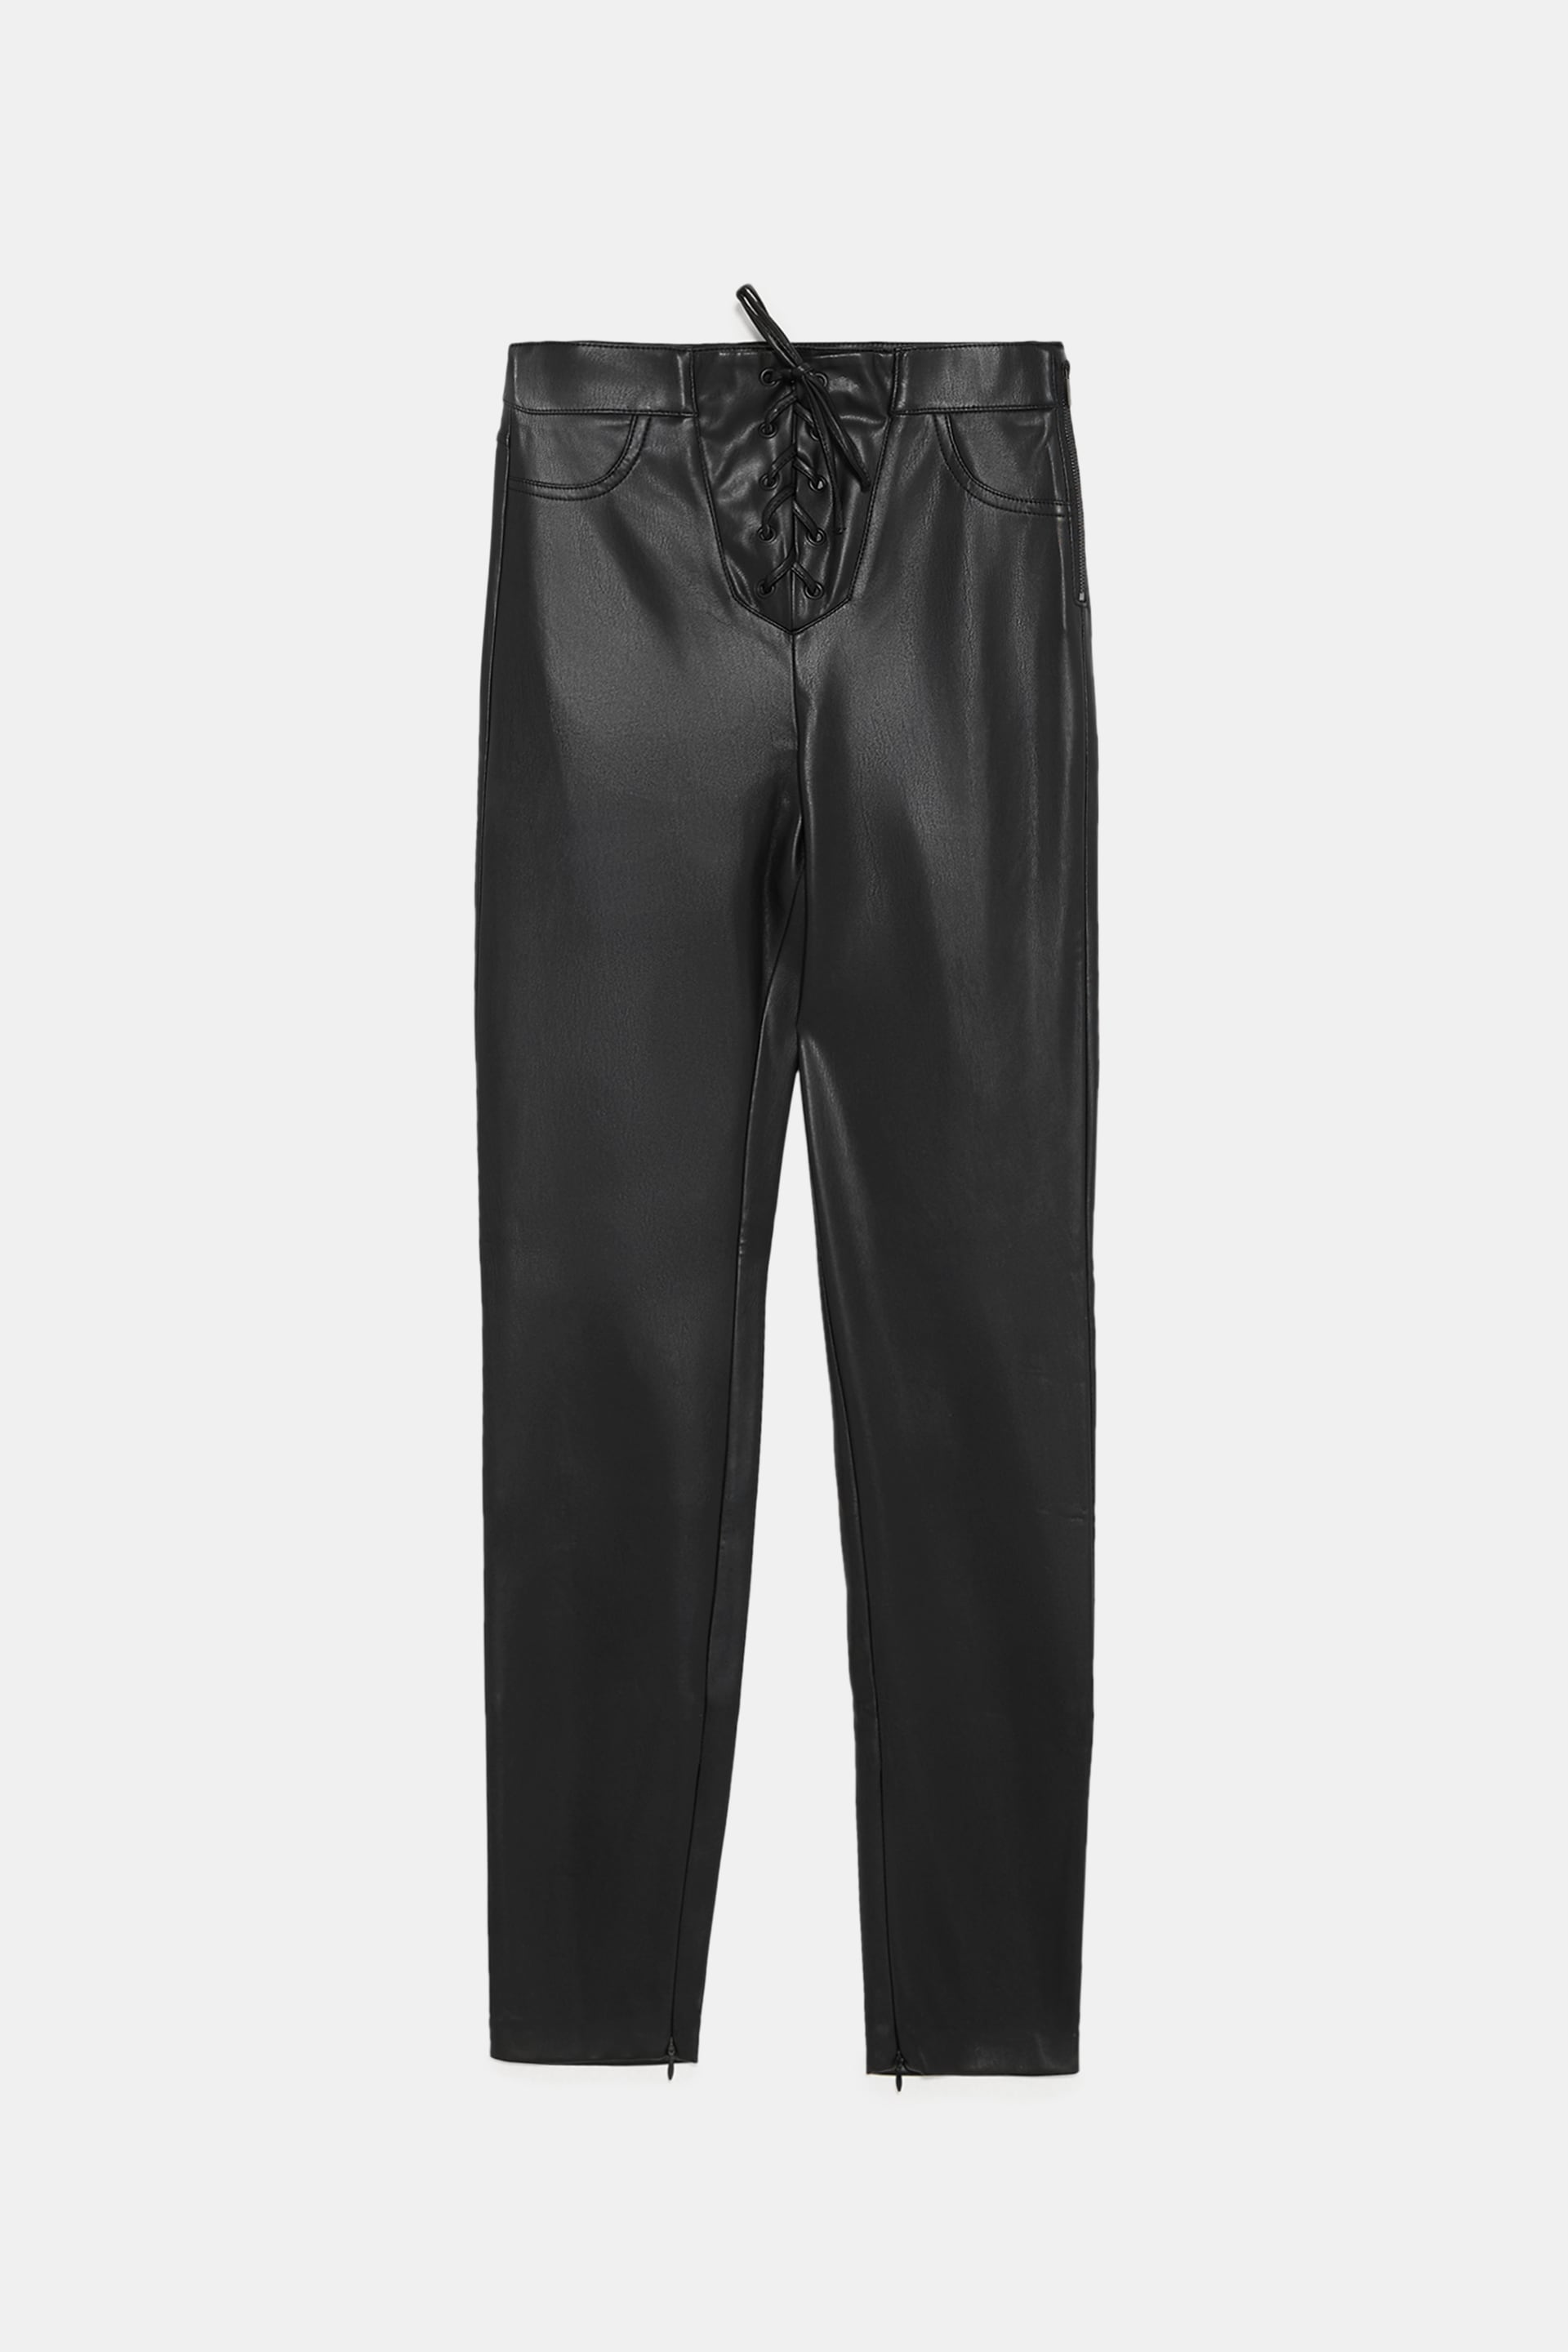 https://www.zara.com/ca/en/faux-leather-high-waisted-leggings-with-lacing-p05427222.html?v1=6453324&v2=1074552